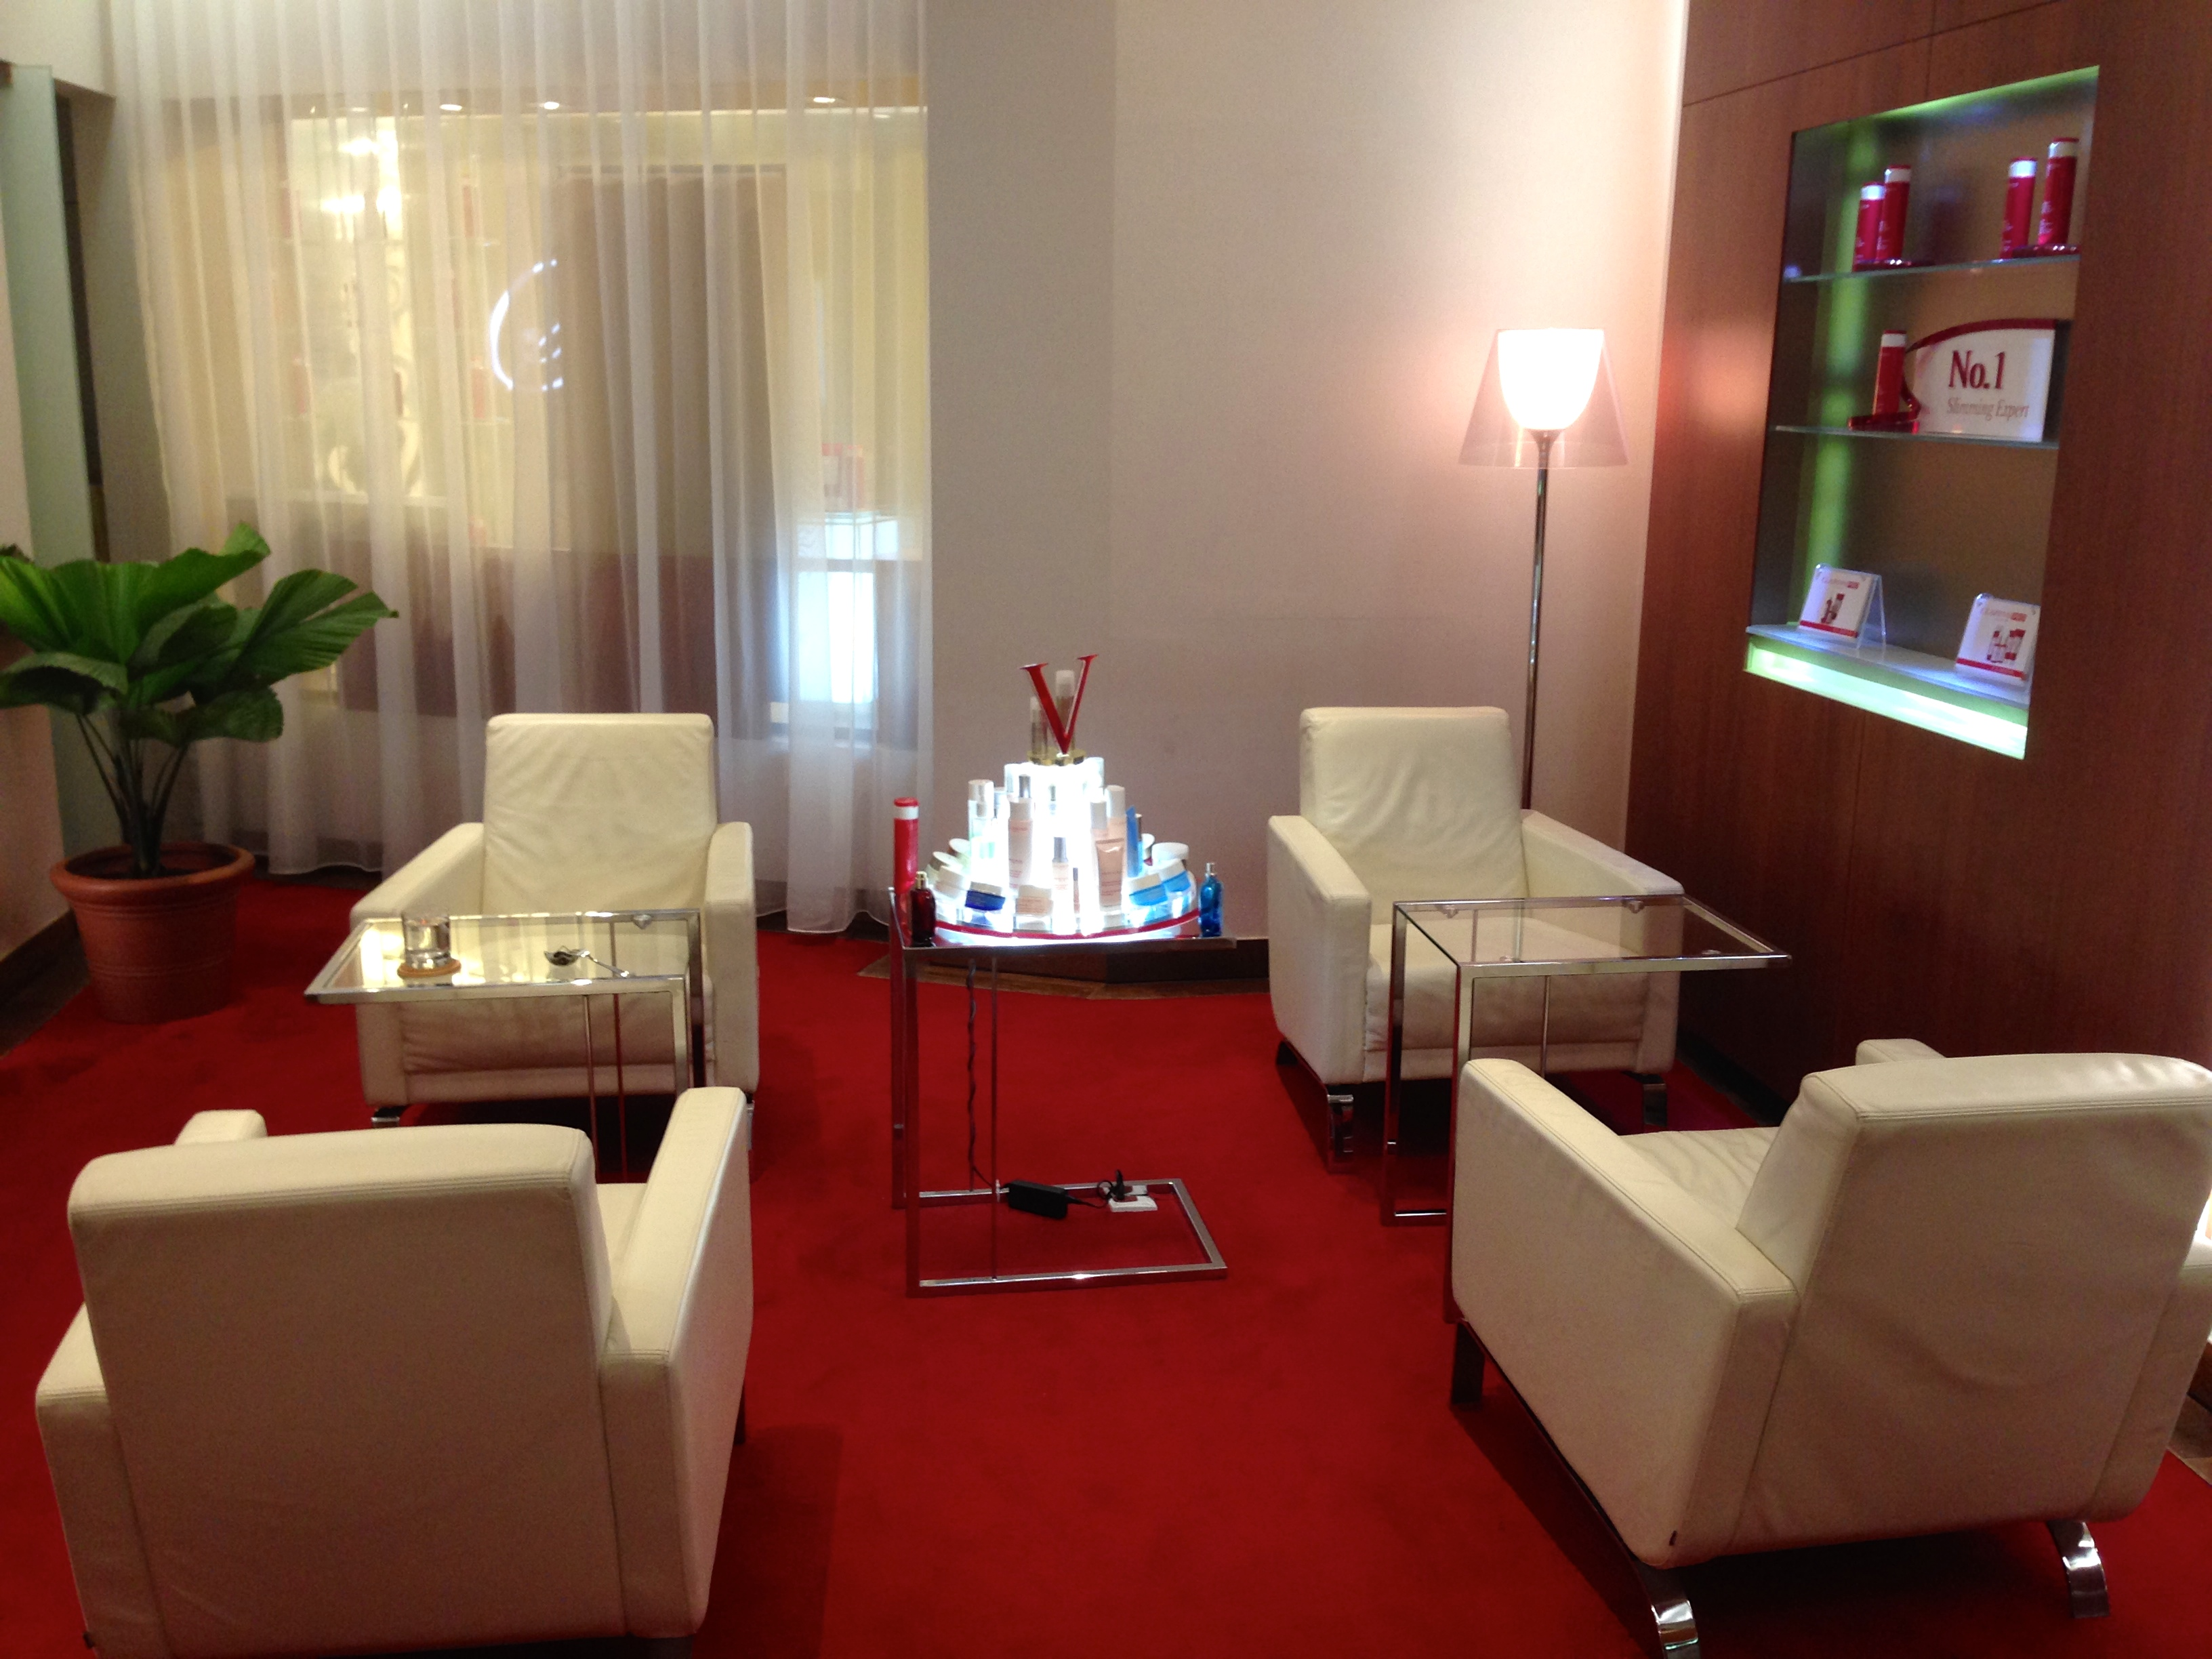 Best facial clarins spa foodin 39 kl for Clarins salon